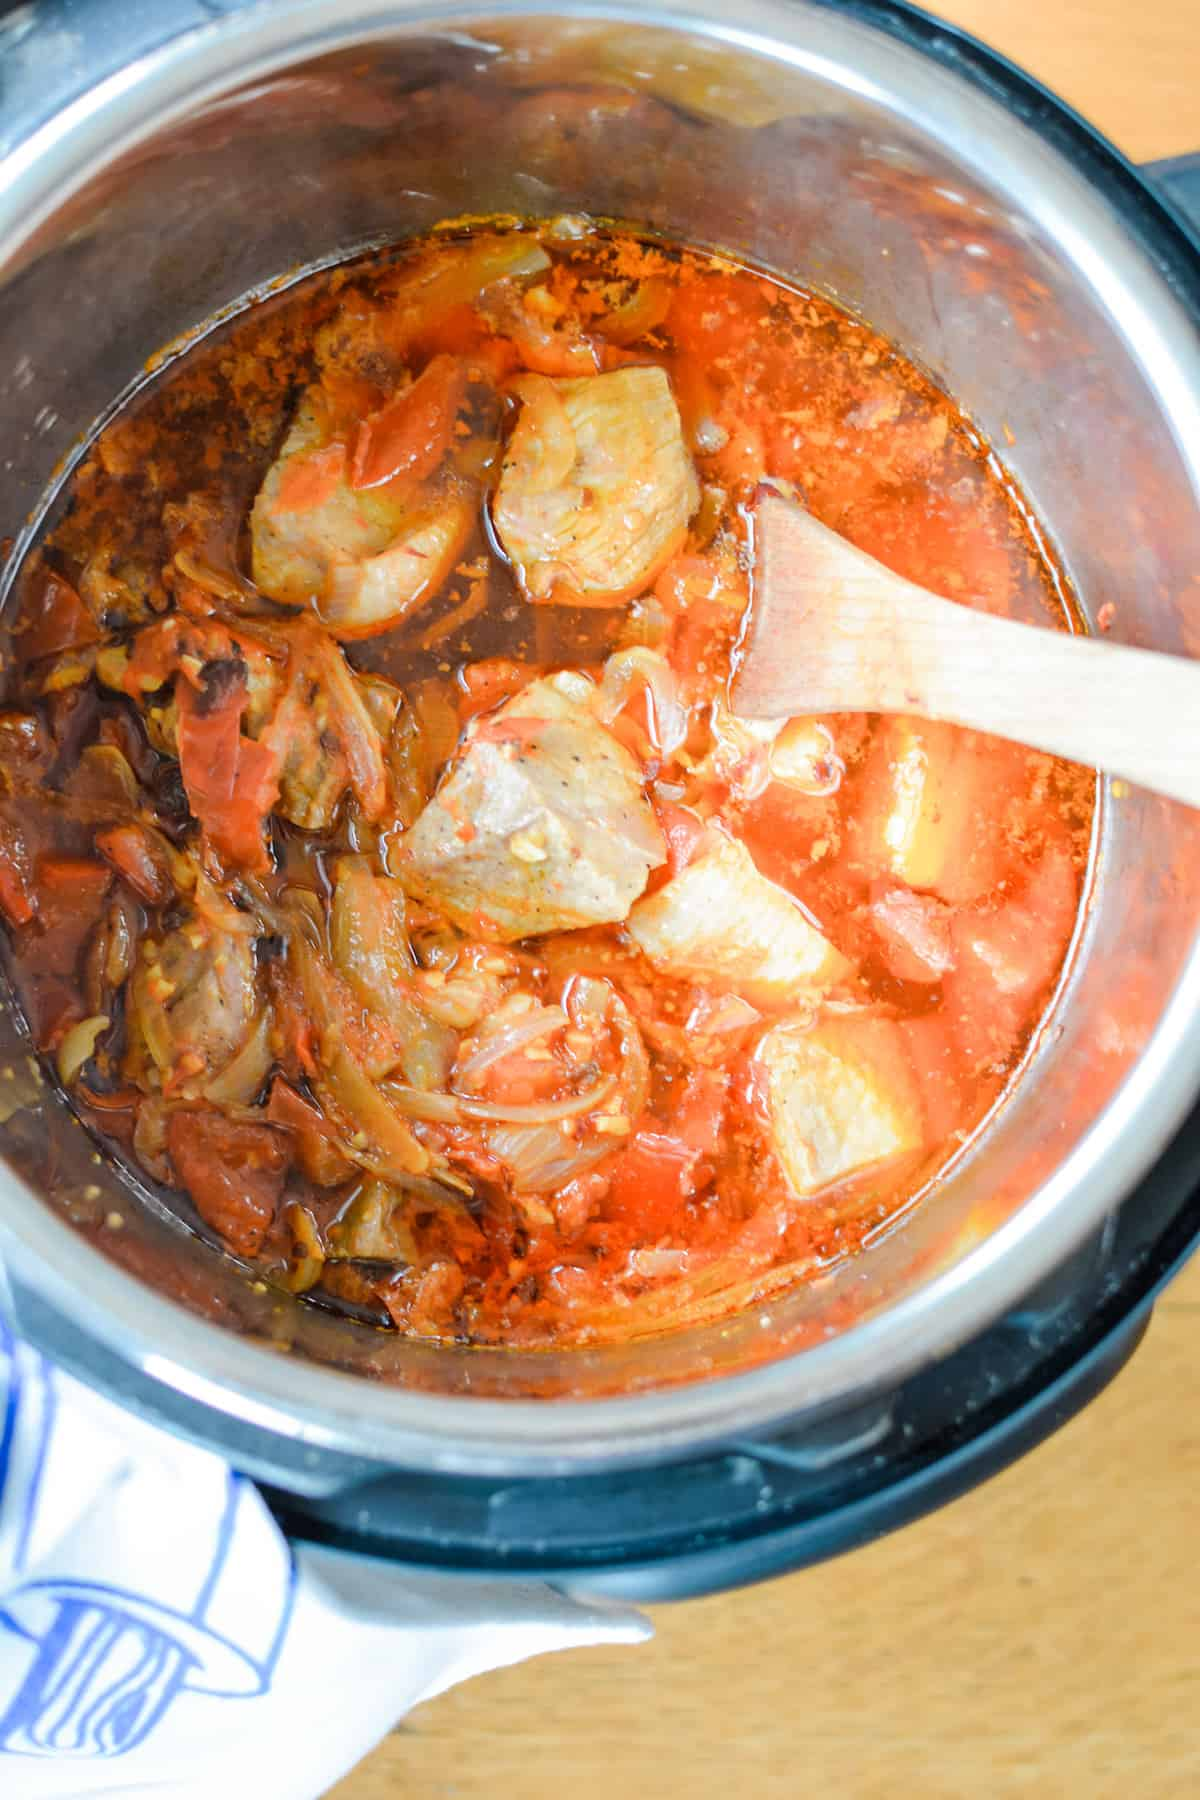 An overhead view of a Instant Pot pressure cooker filled with pieces of pork, onions, and garlic in a tomato sauce. A wood spoon is in the pot.